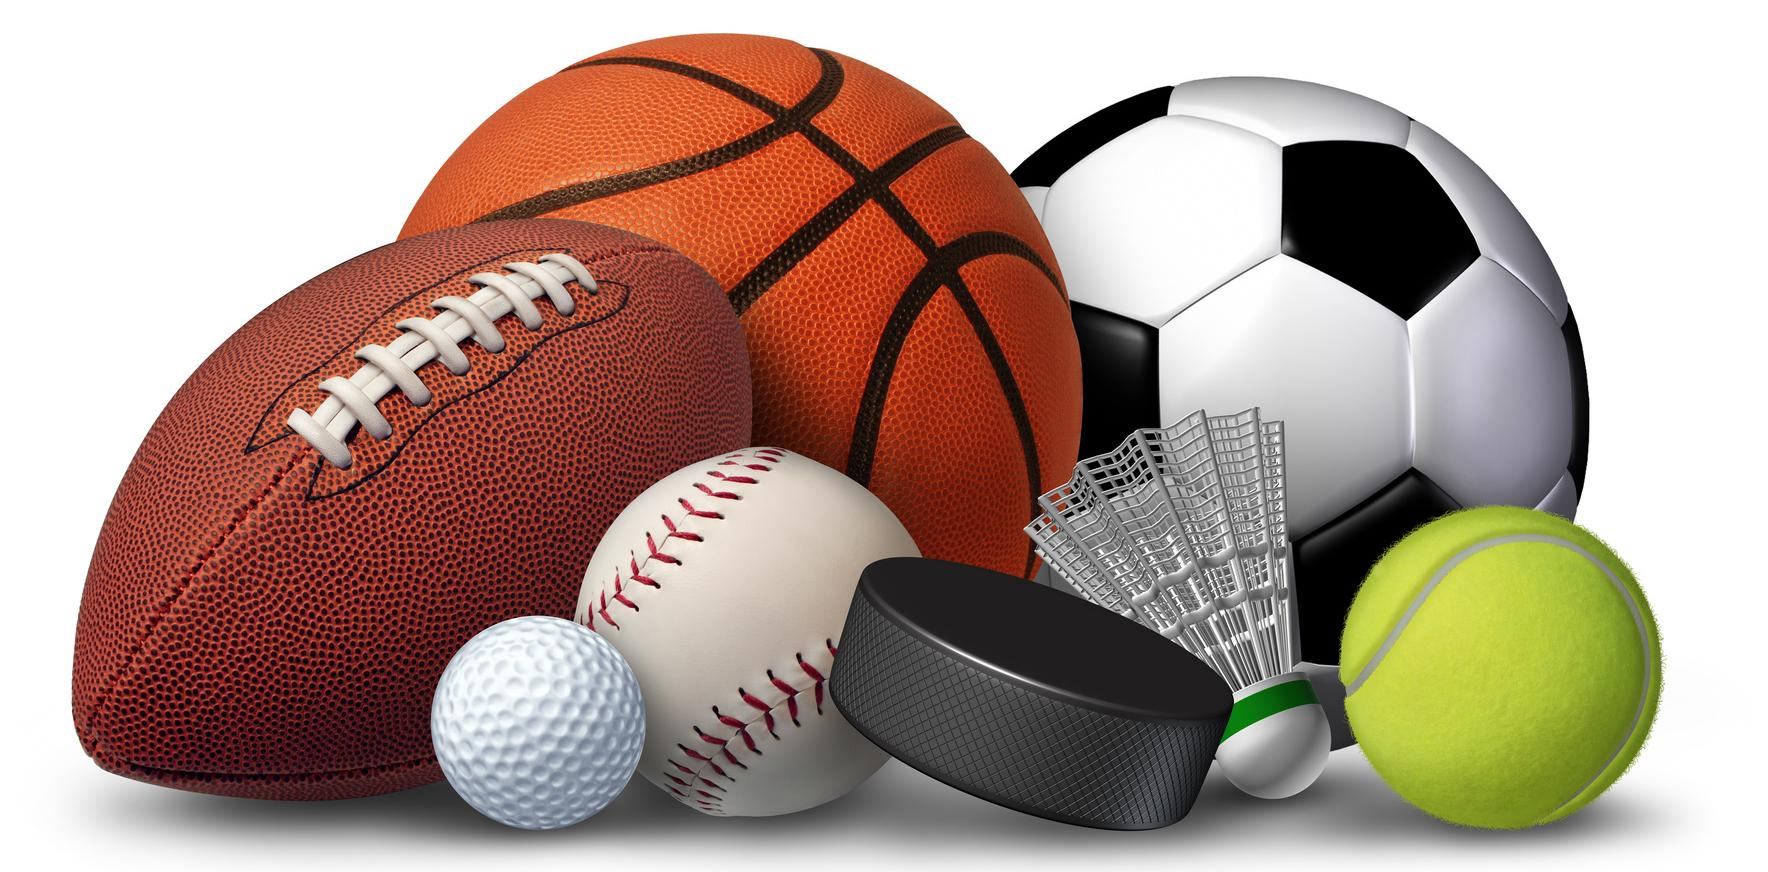 A variety of athletic balls including football, basketball and soccer ball